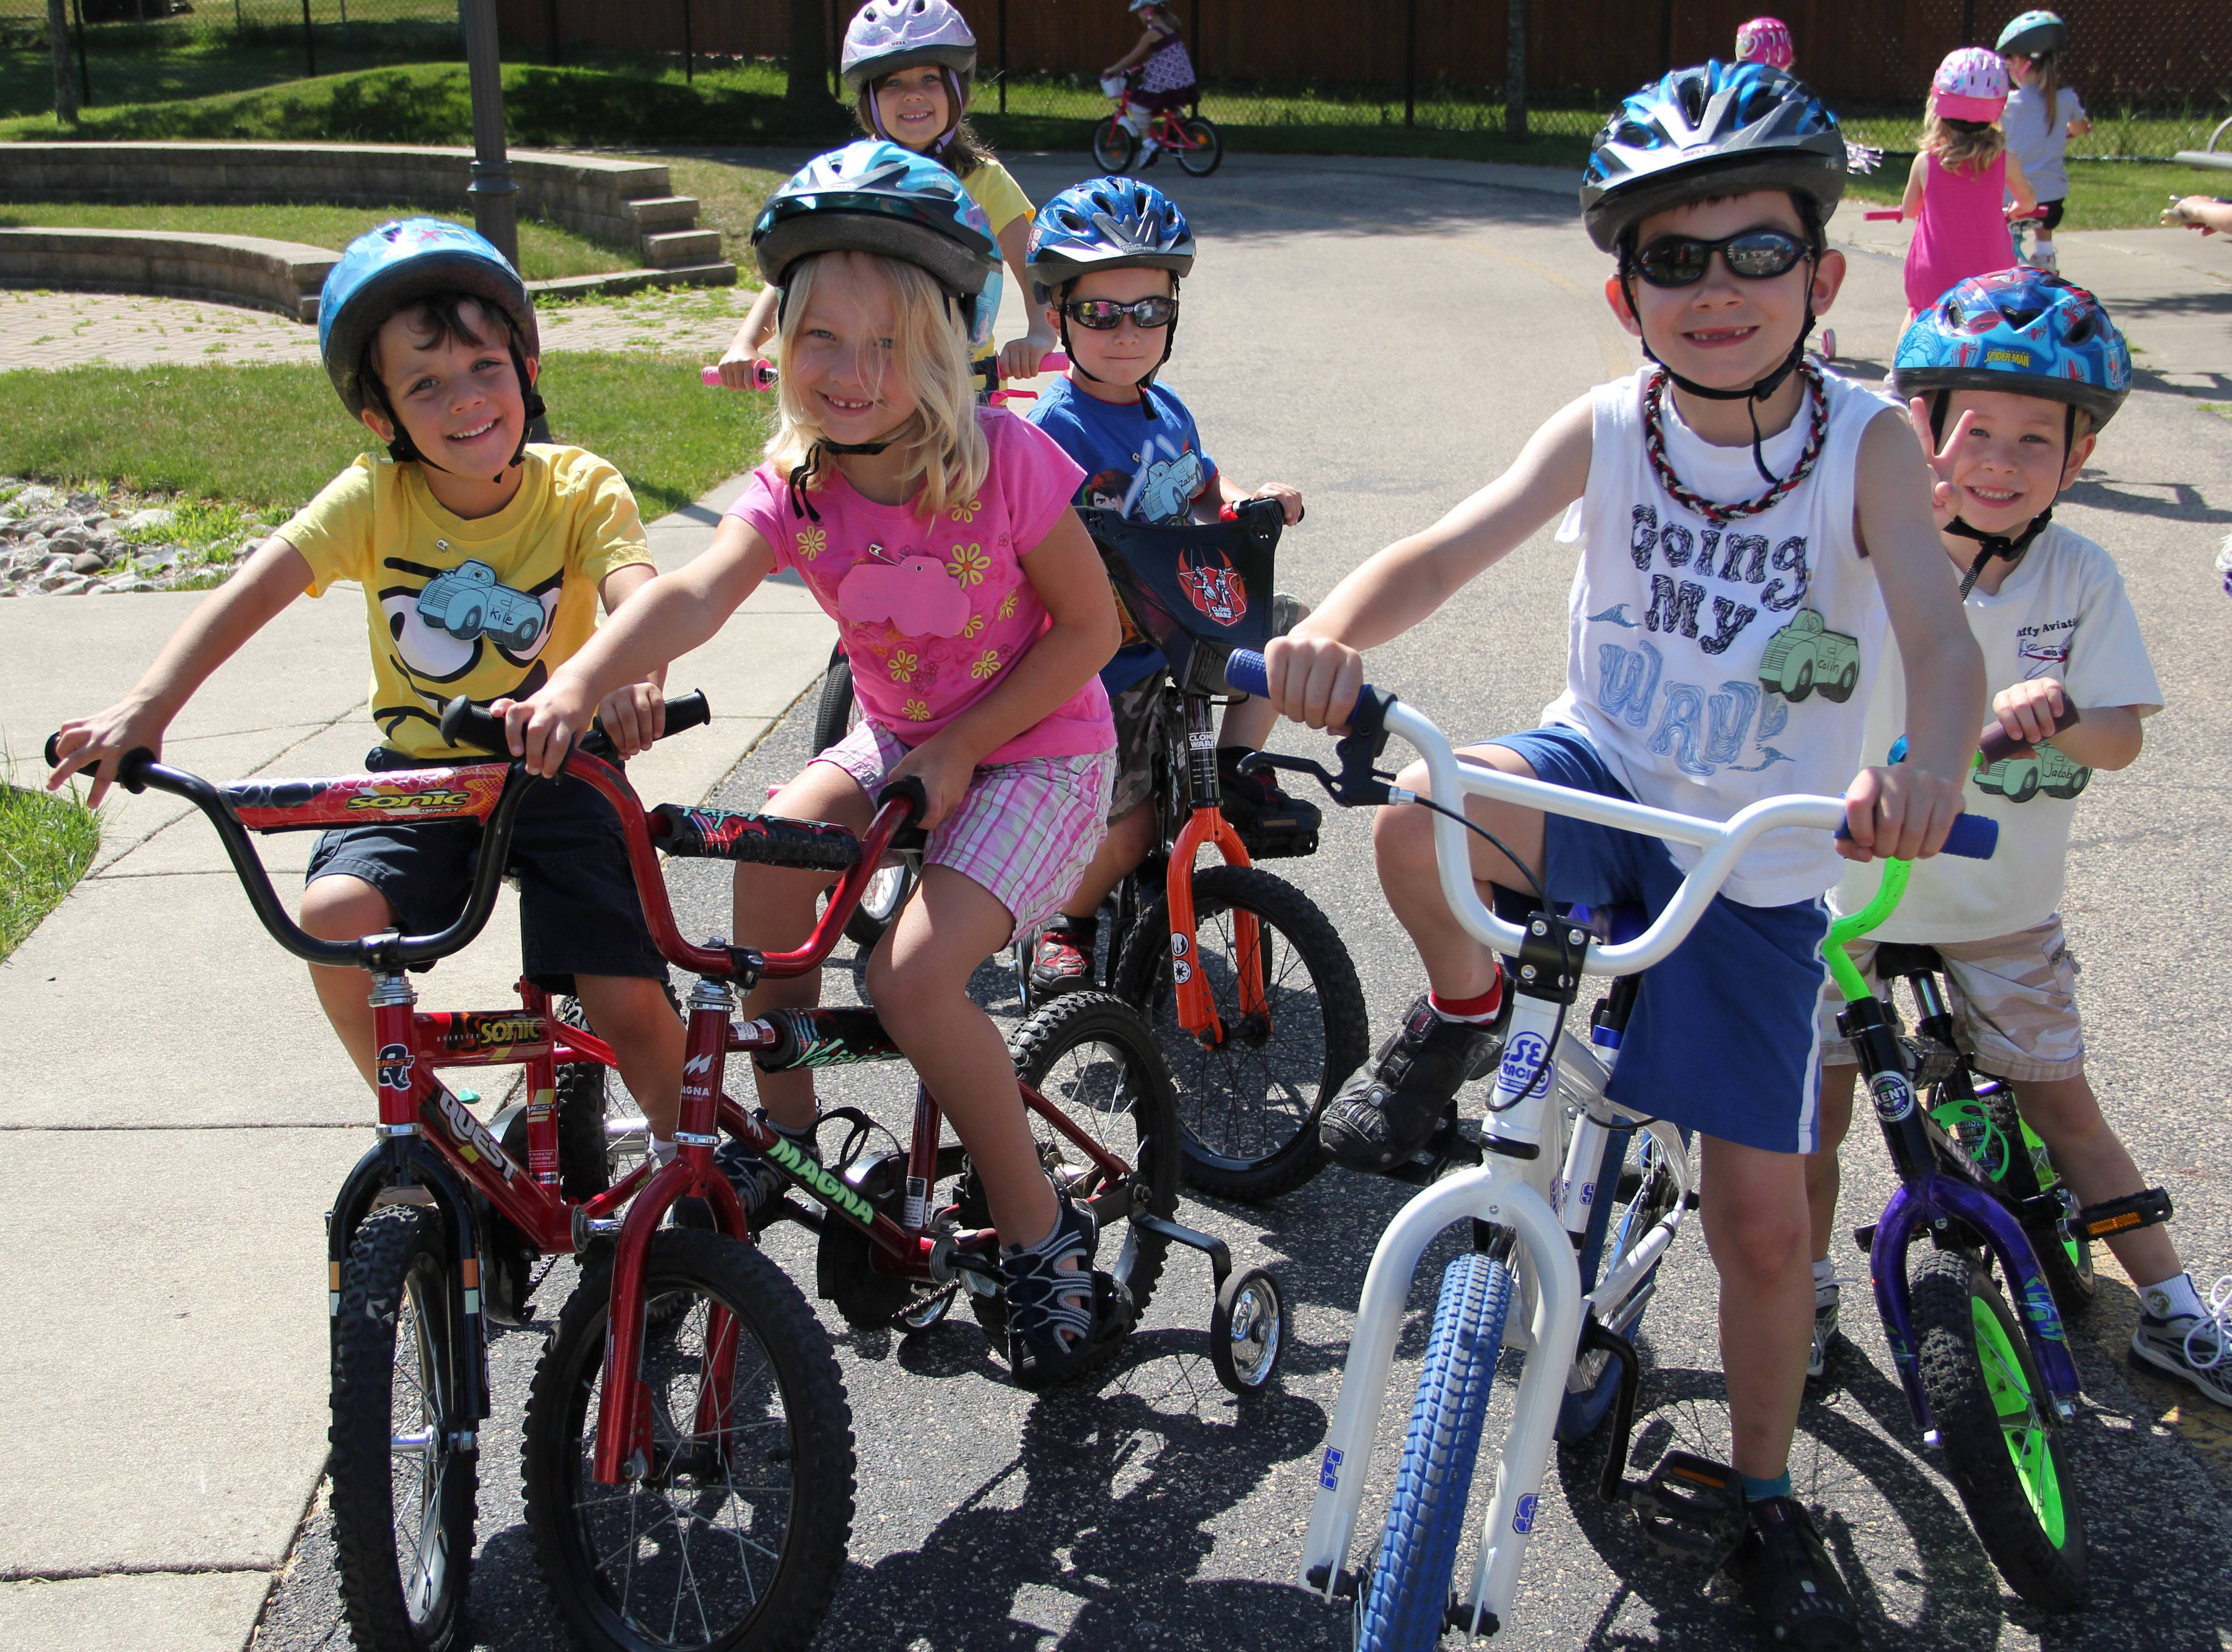 Children ride bikes and learn safety lessons at Safety Park.